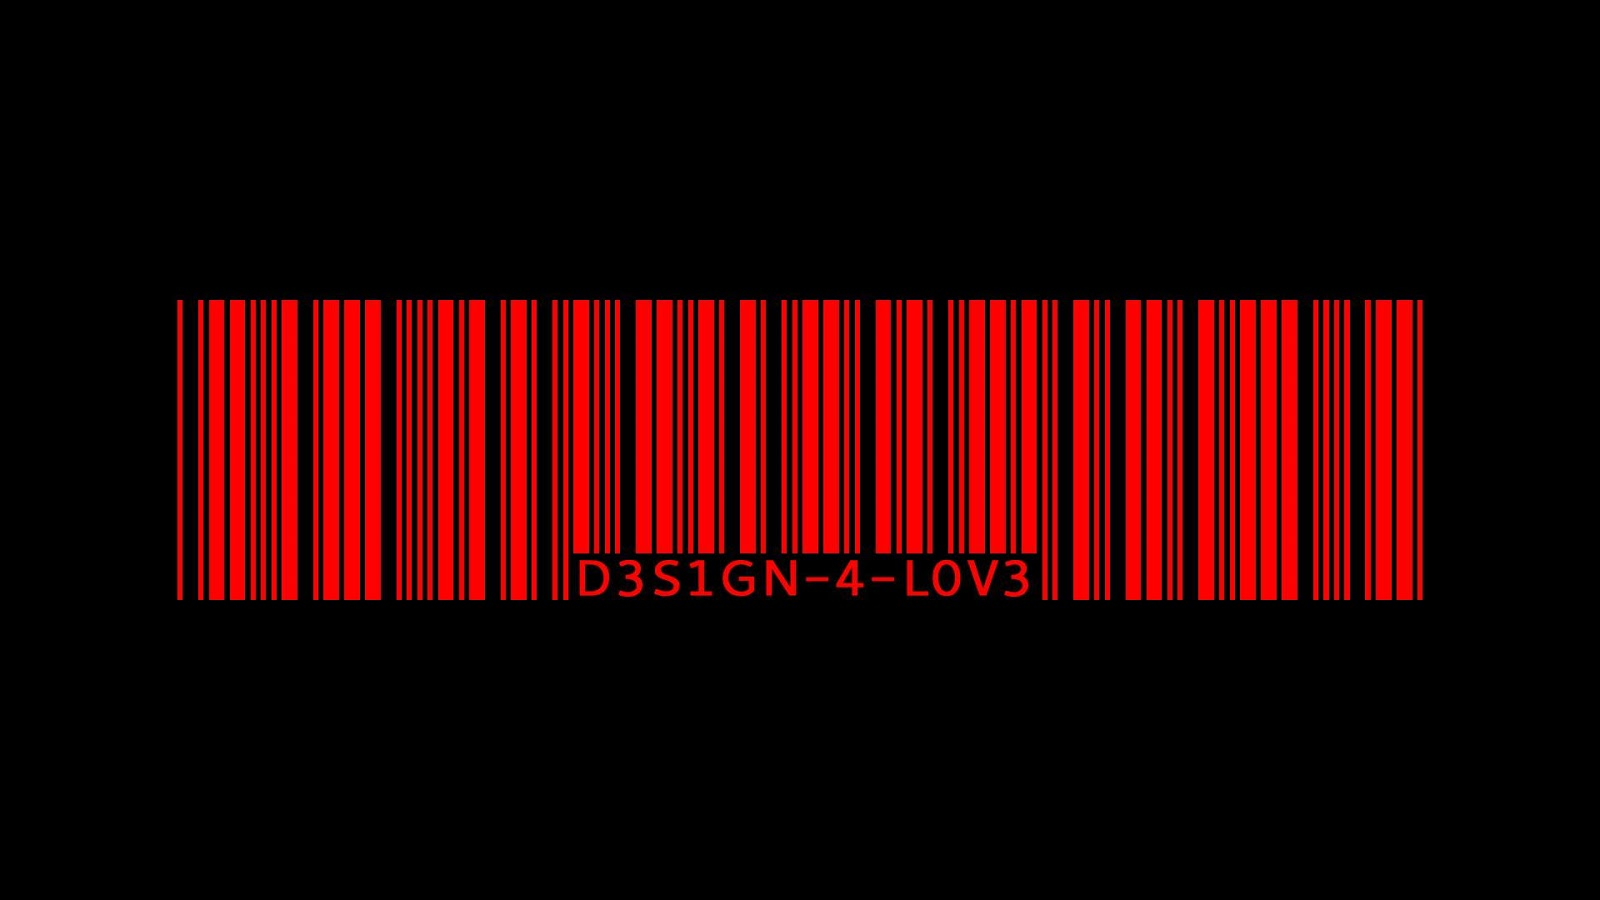 Black And White Wallpapers Red Barcode Black Red Wallpaper